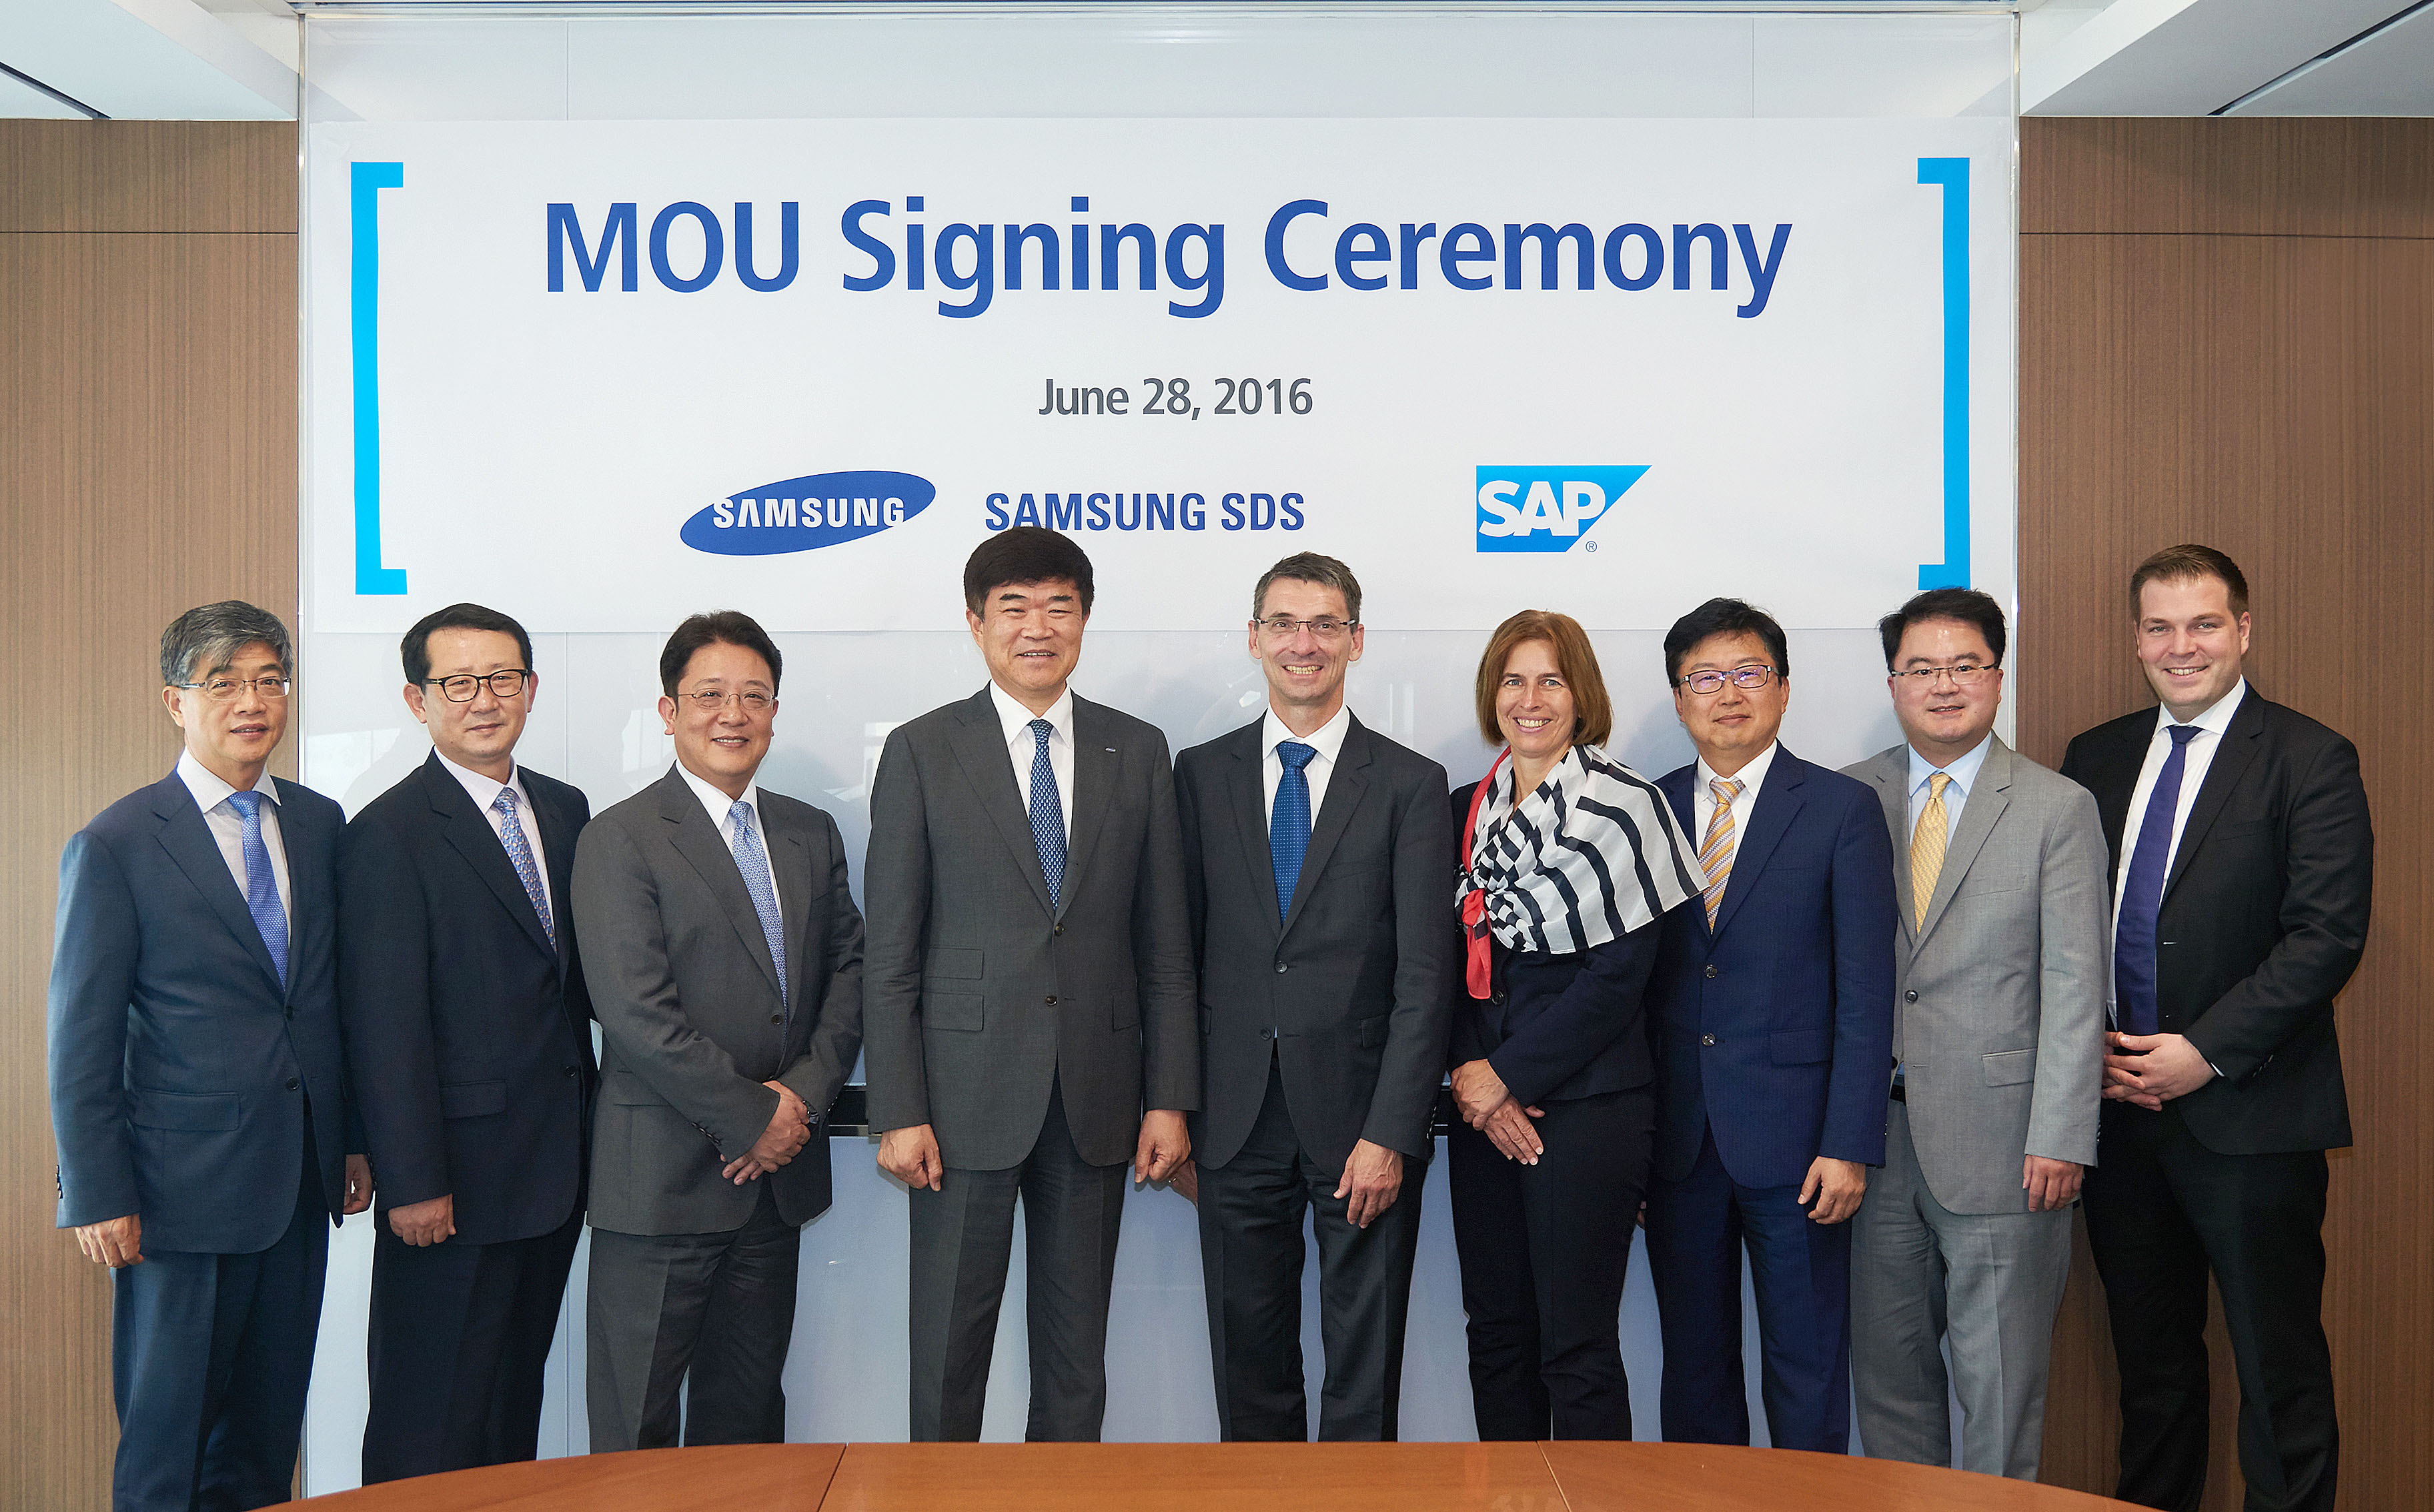 Signing MOU between Samsung SDS and SAP.